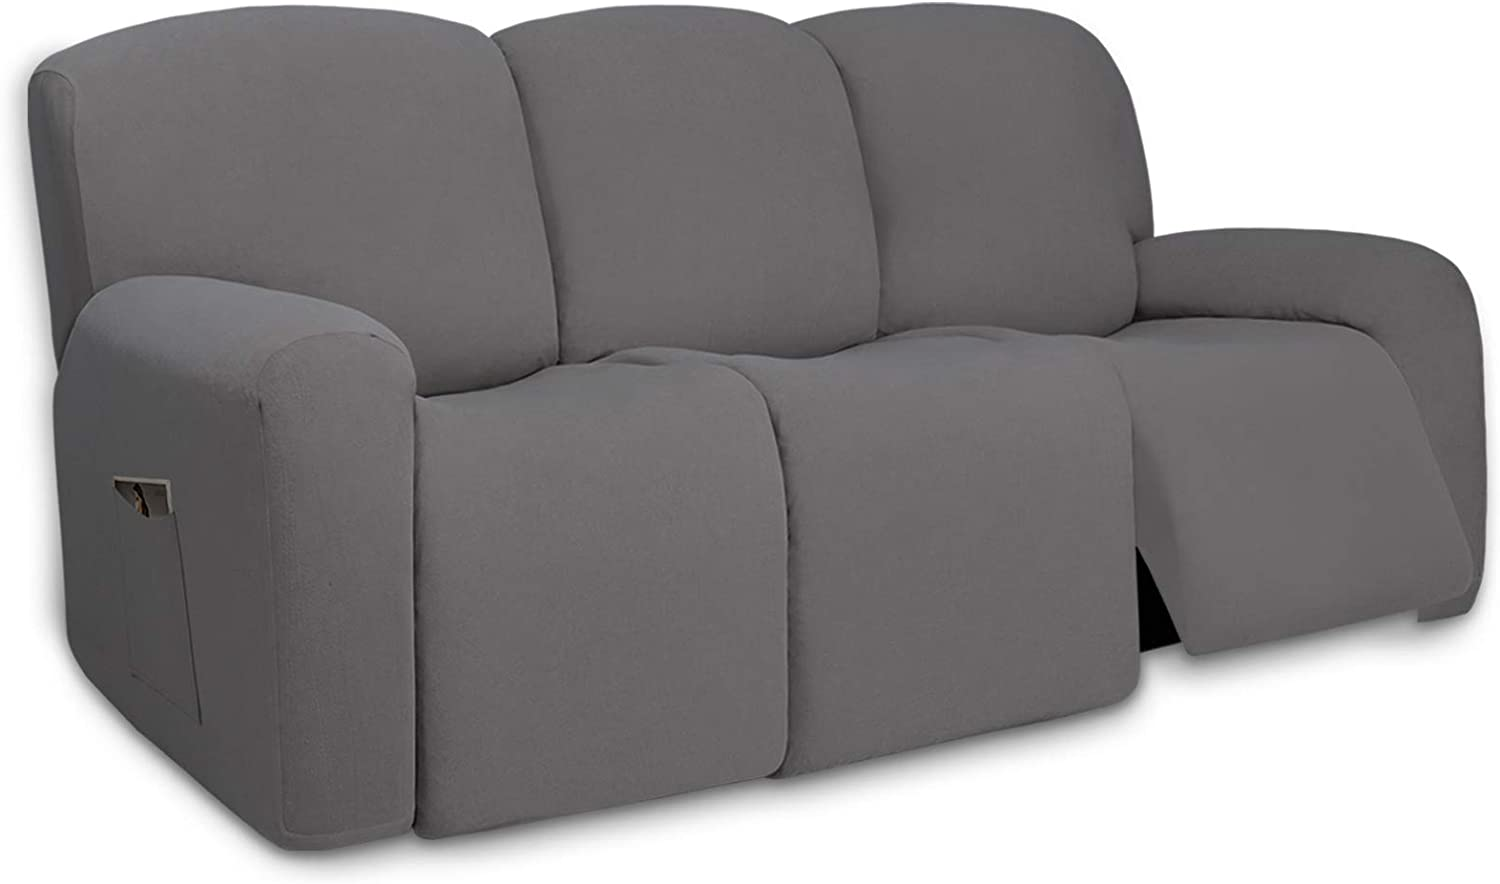 PureFit Super Stretch 3 Seats Recliner Sofa Ranking TOP15 wi Chair Portland Mall Couch Cover